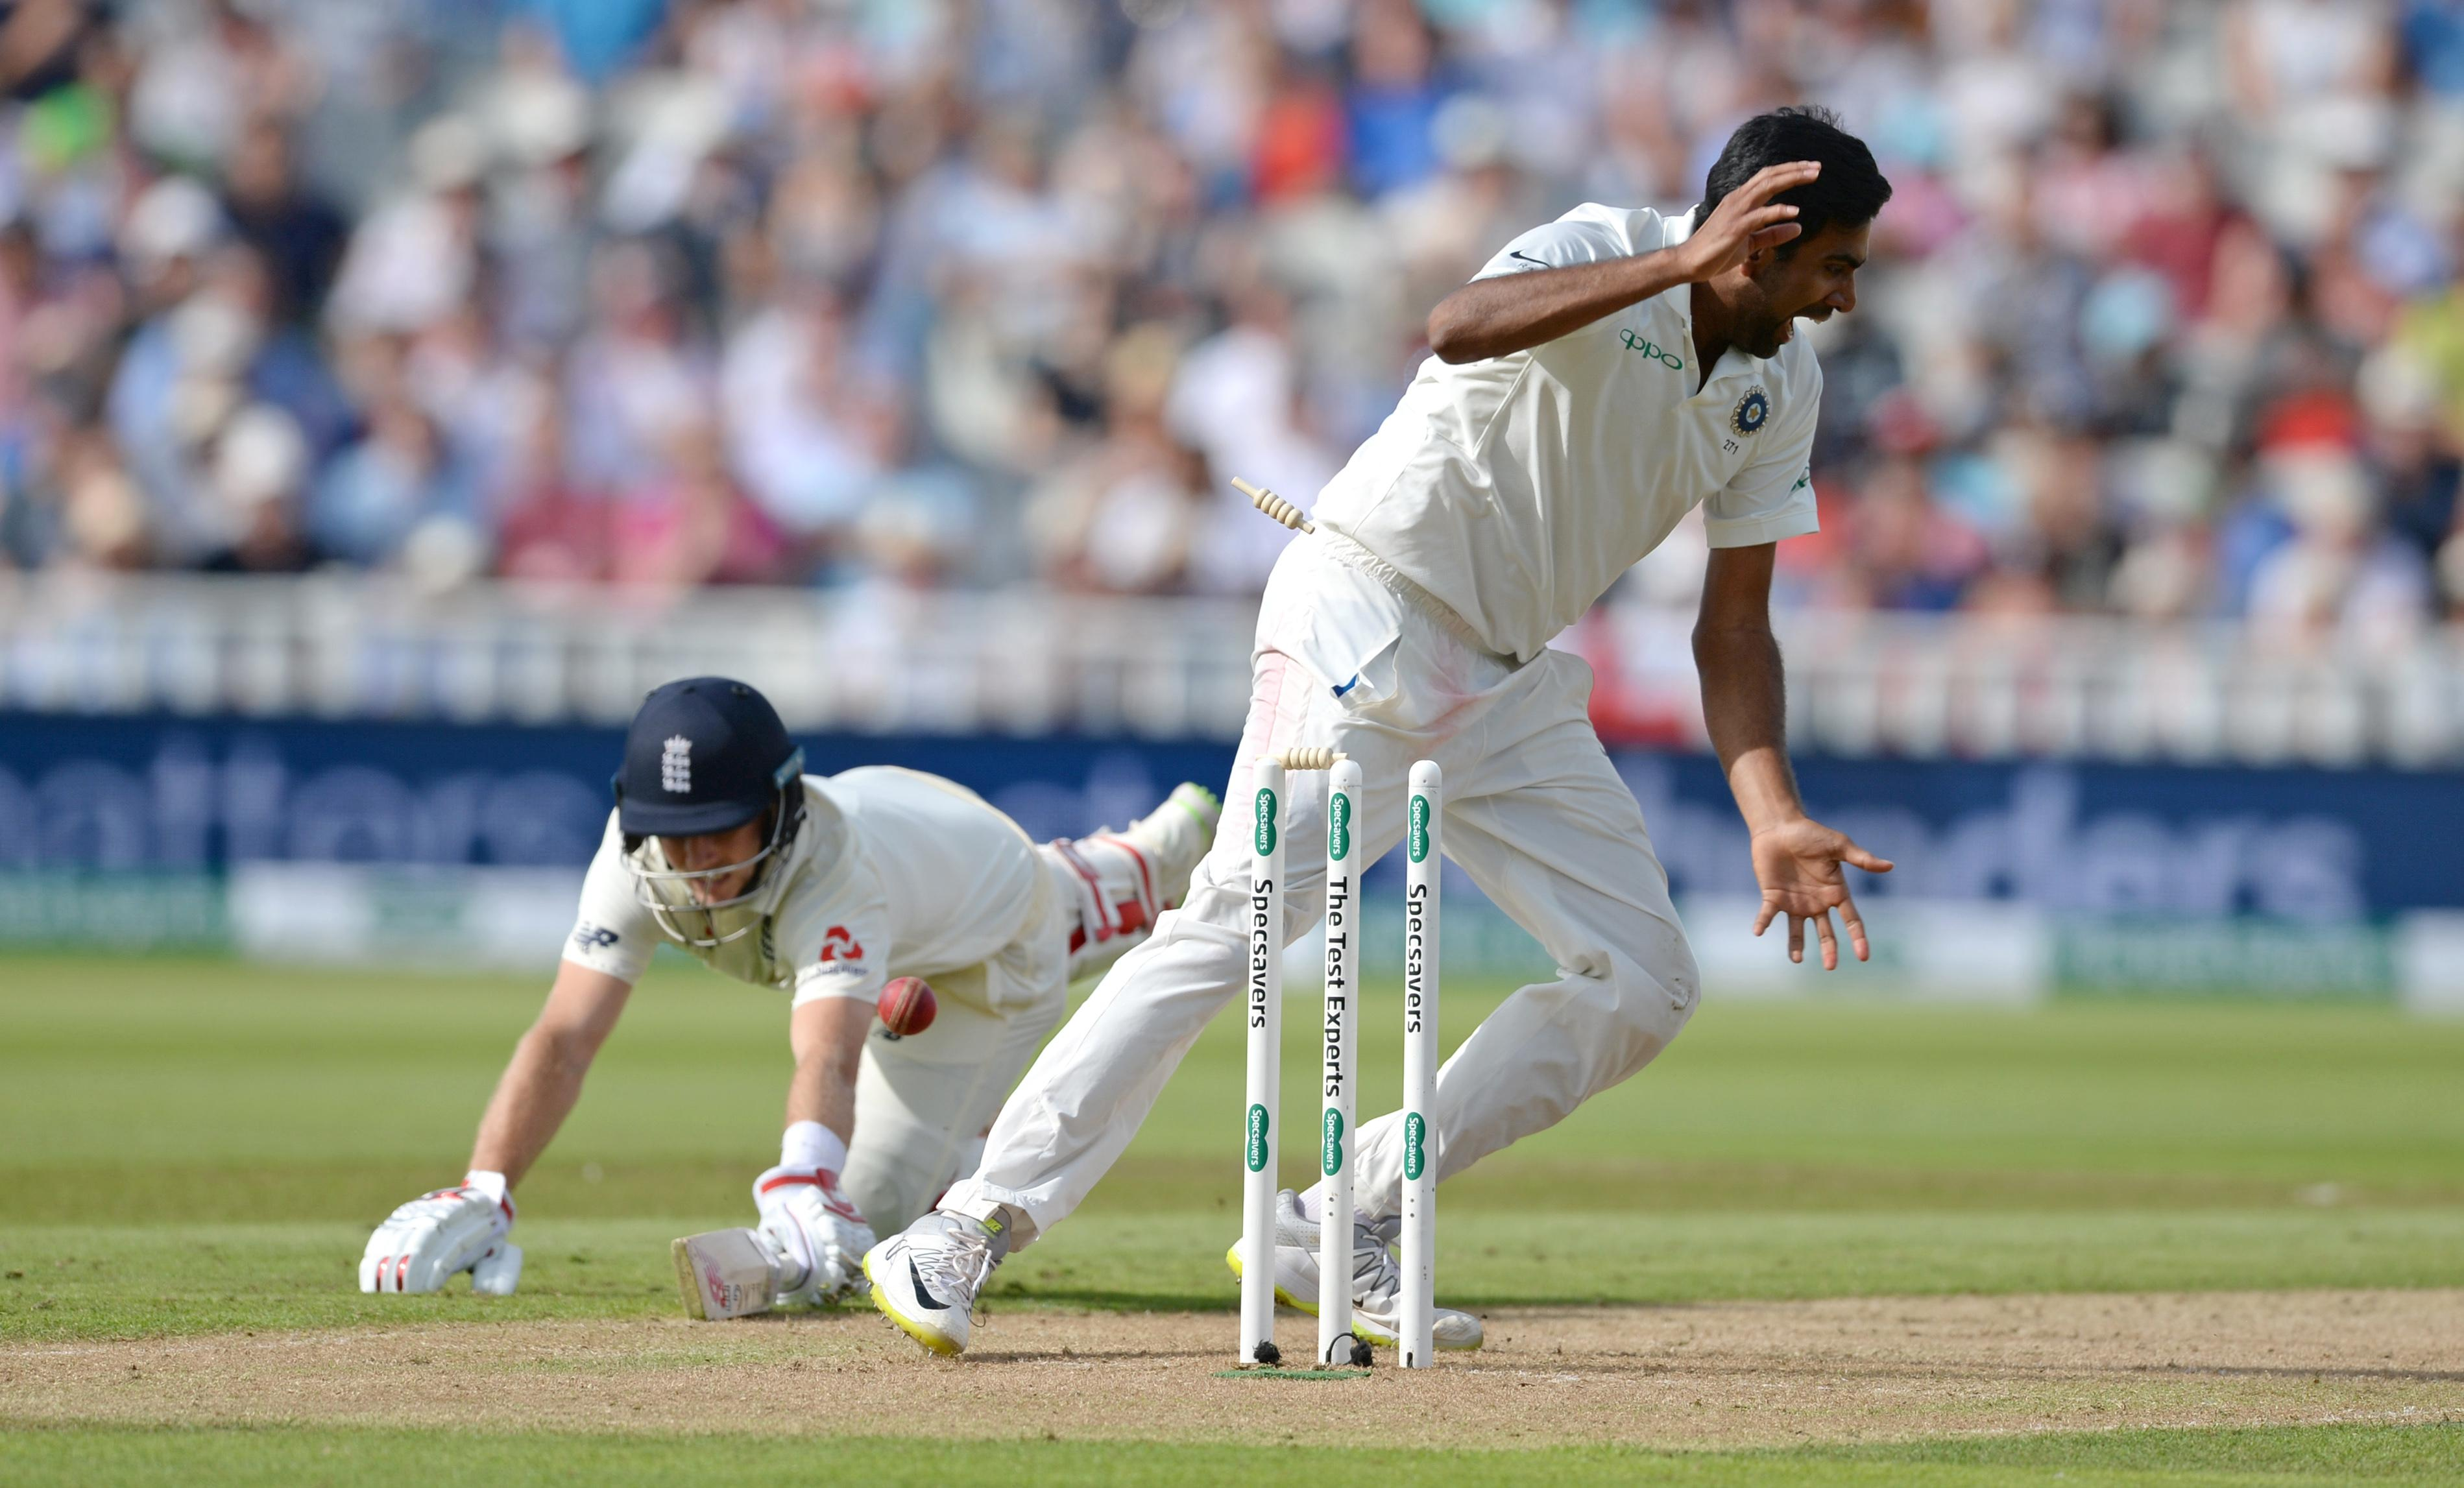 Root was left floundering when Kohli scored a direct hit to run him out